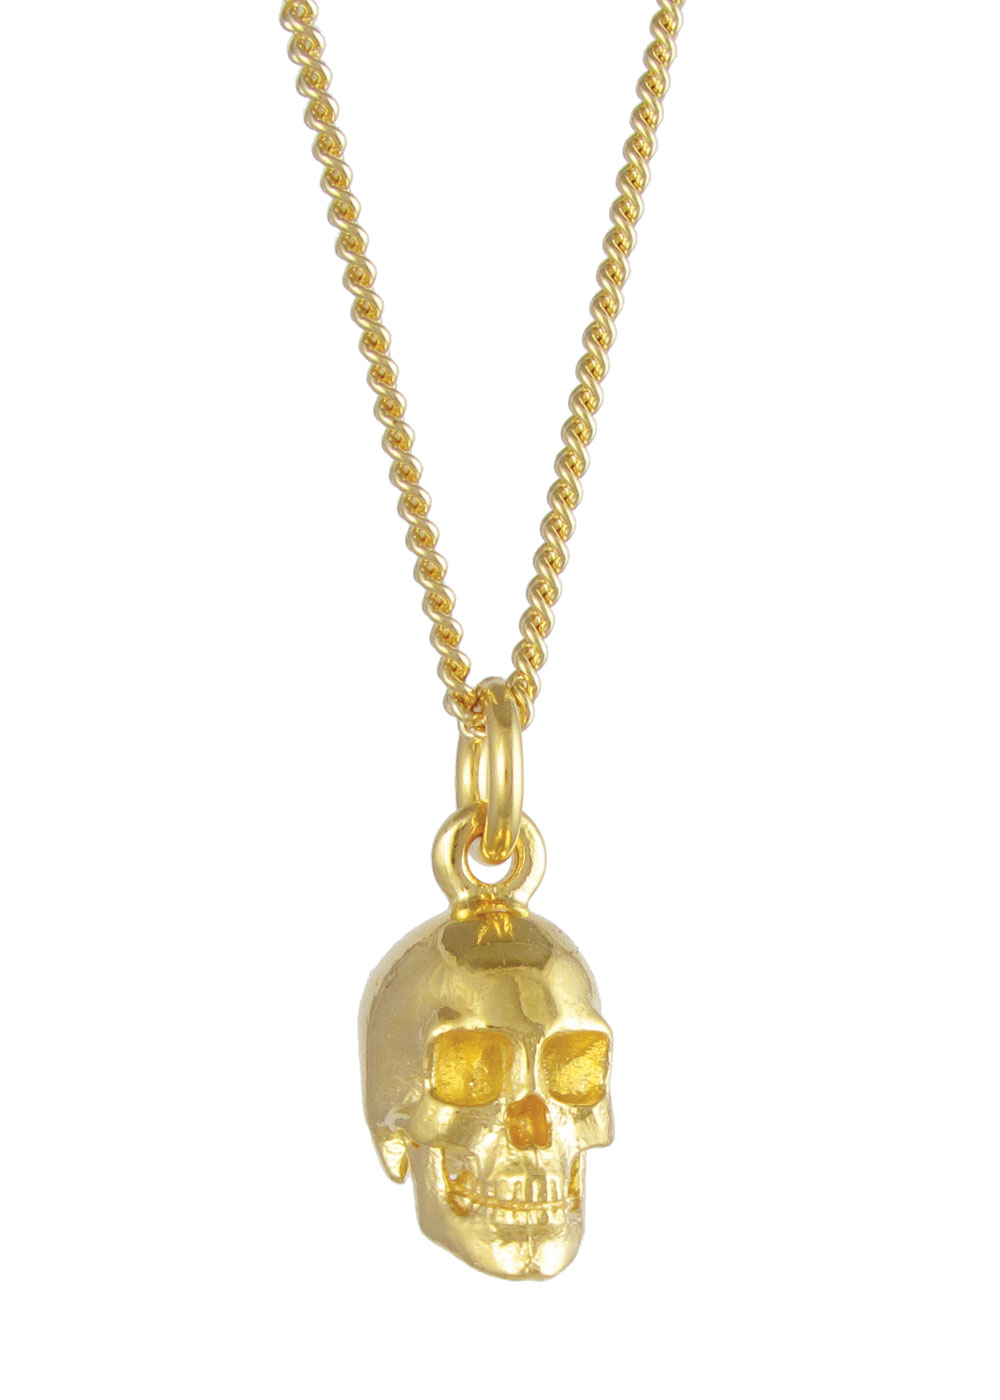 necklaces leivankash skull shop jewellery gold necklace yellow